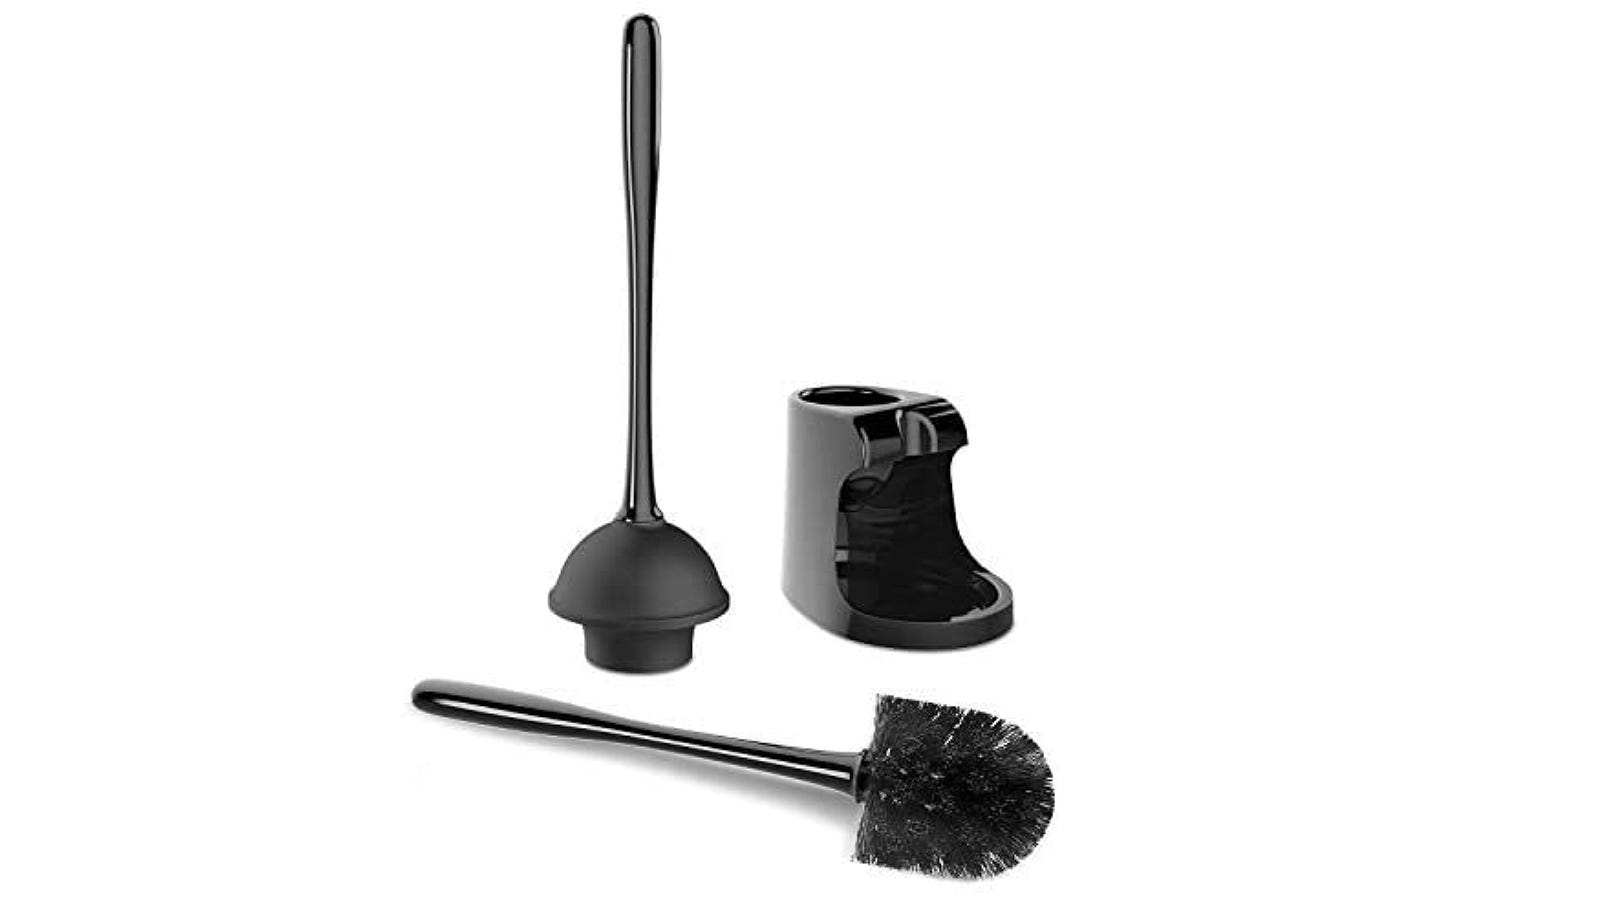 A black plunger, toilet brush, and matching stand against a white background.